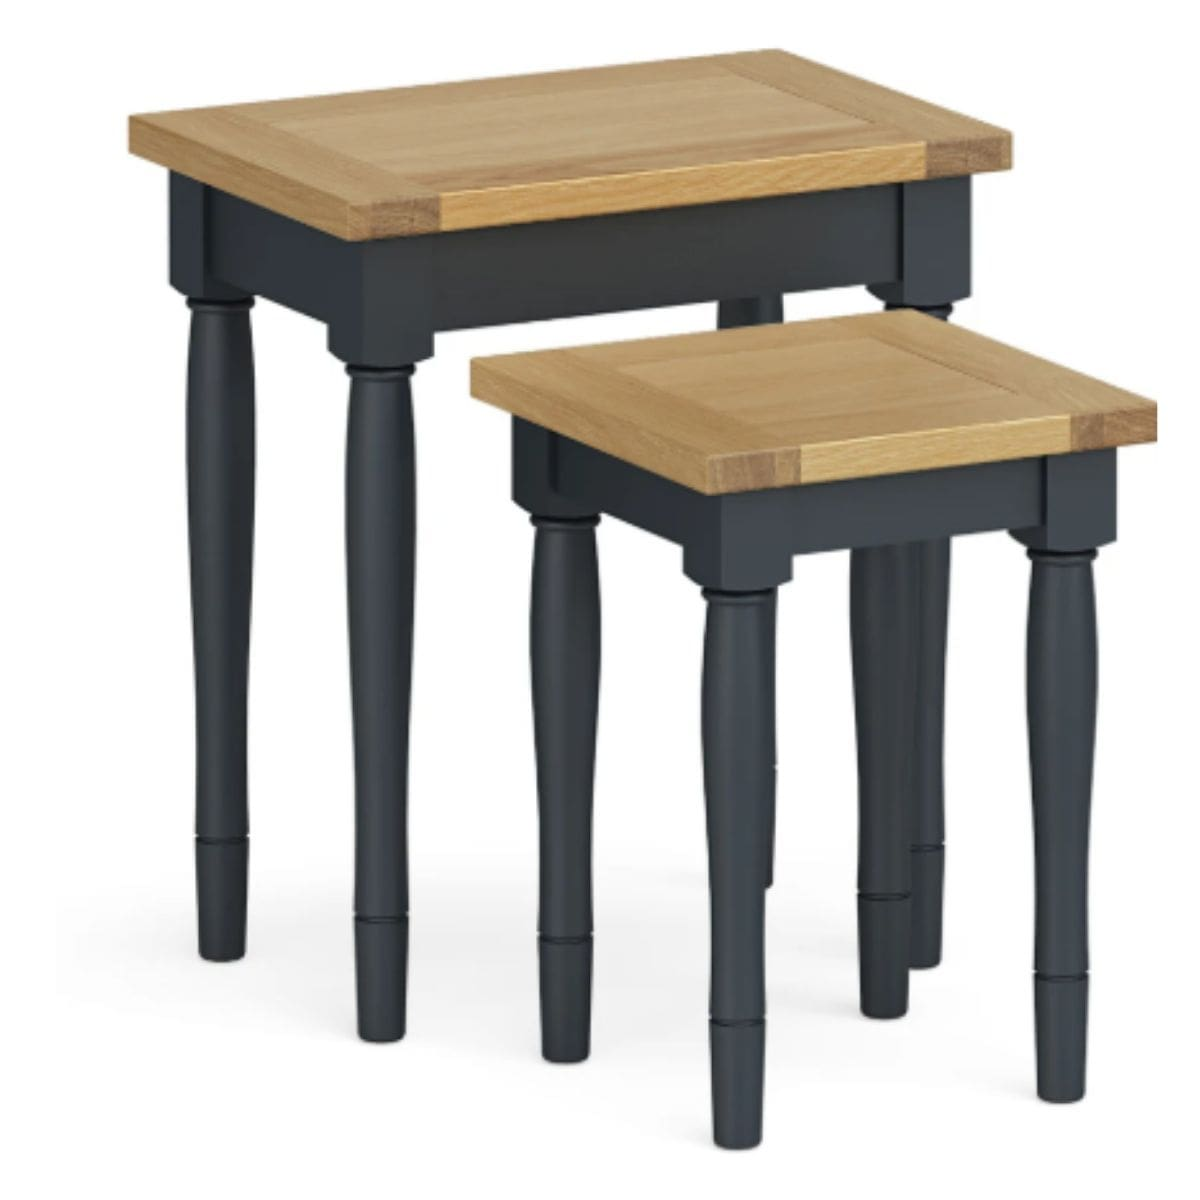 Charlie Charcoal and Oak Nest of Tables